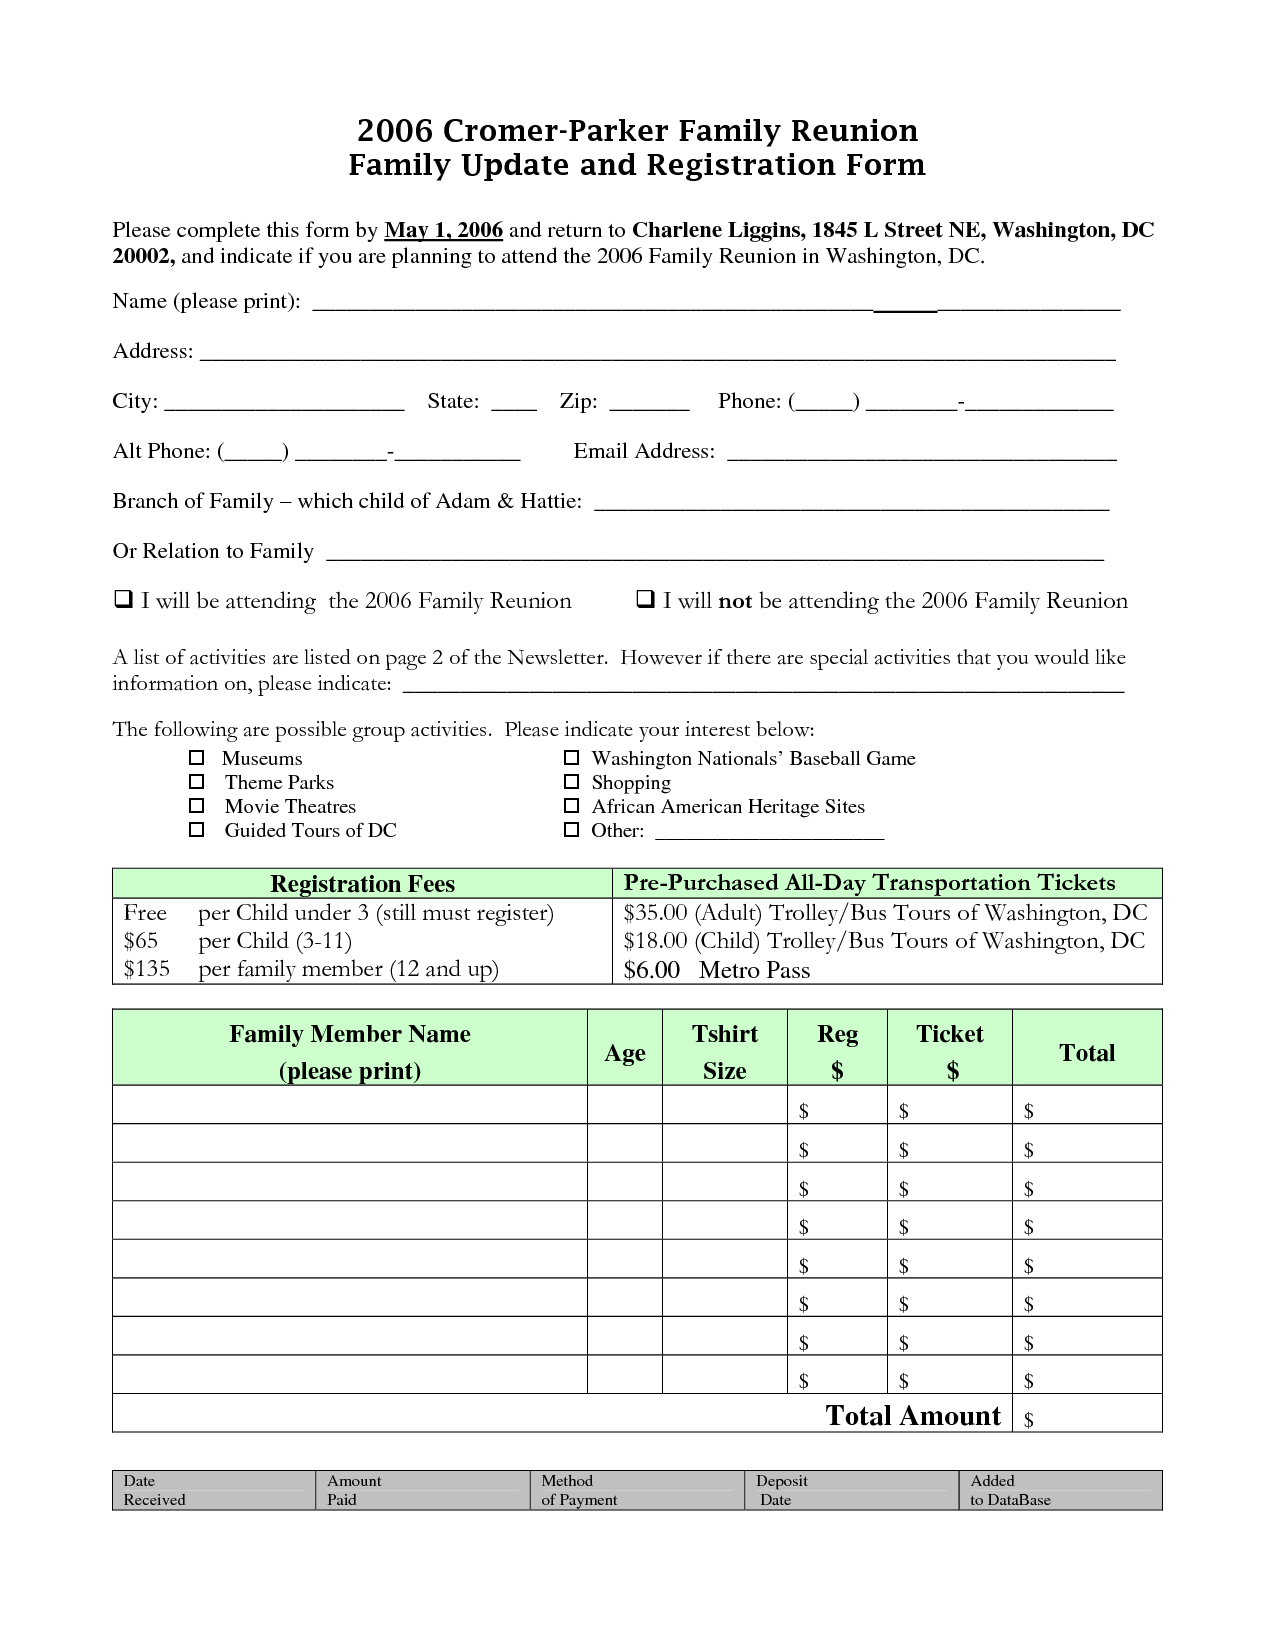 family reunion planners 2006 cromer parker family reunion family update and registration